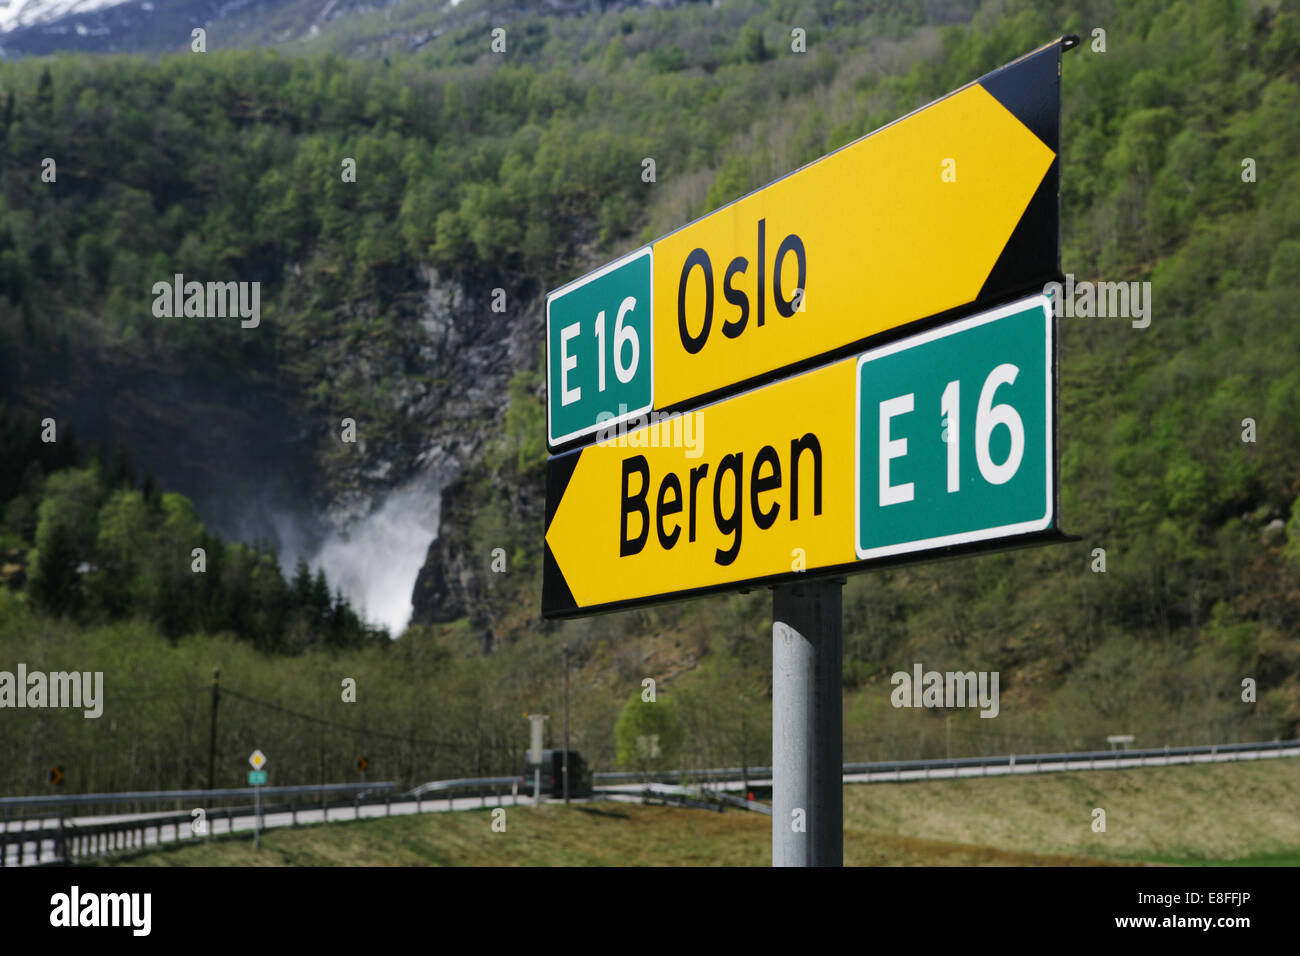 Bergen and Oslo road signs, Norway - Stock Image